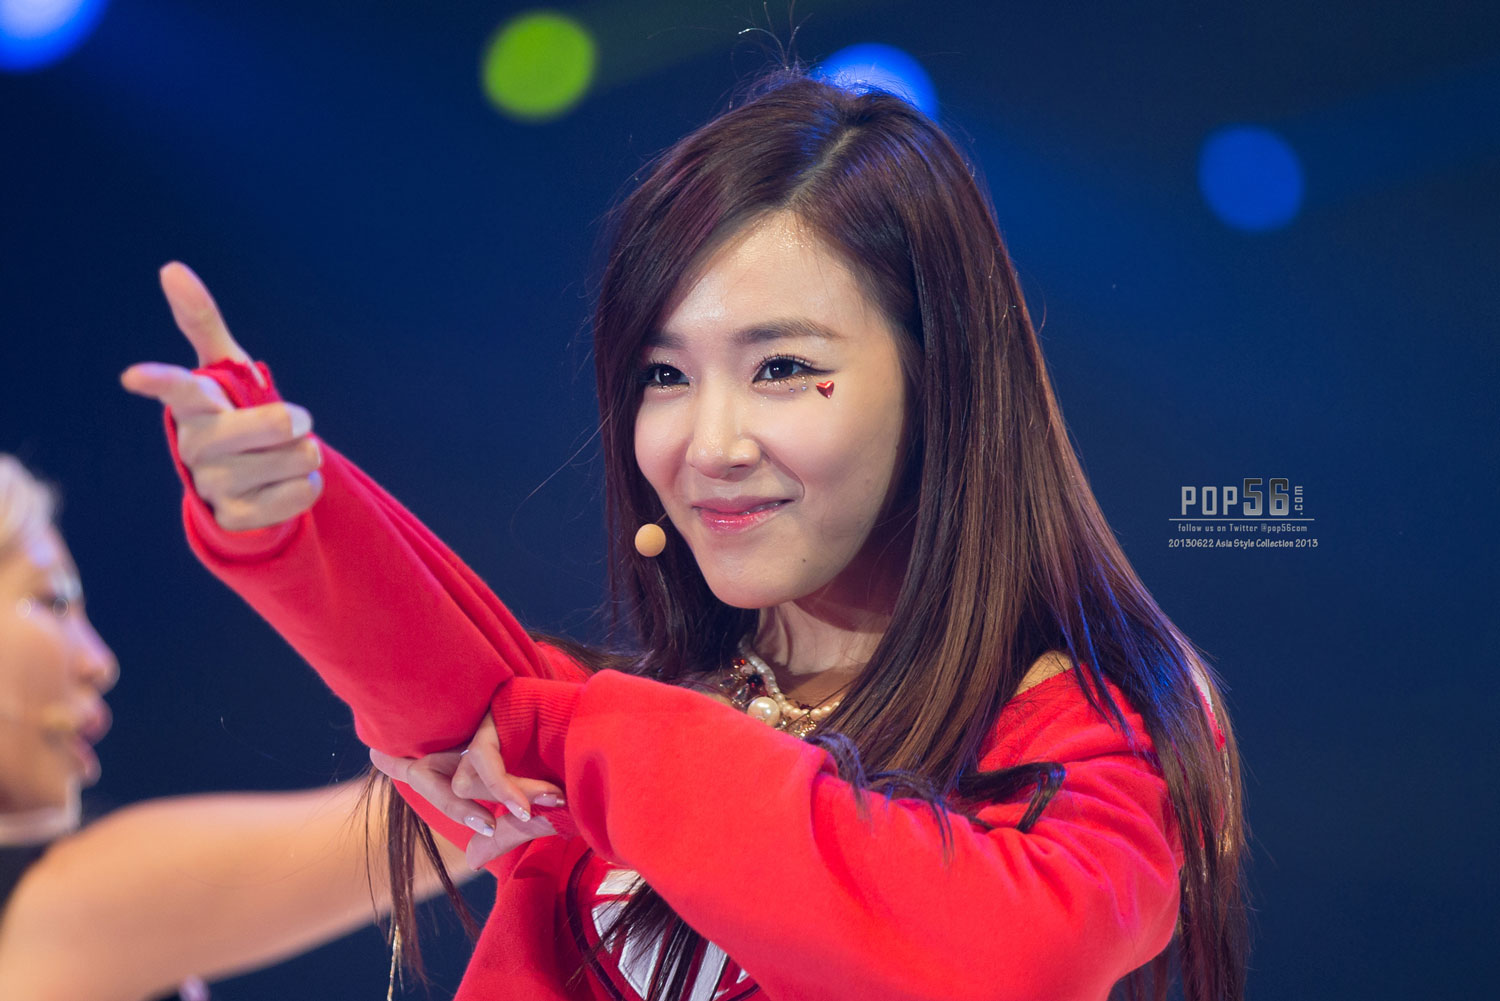 SNSD Tiffany Asia Style Collection in Singapore